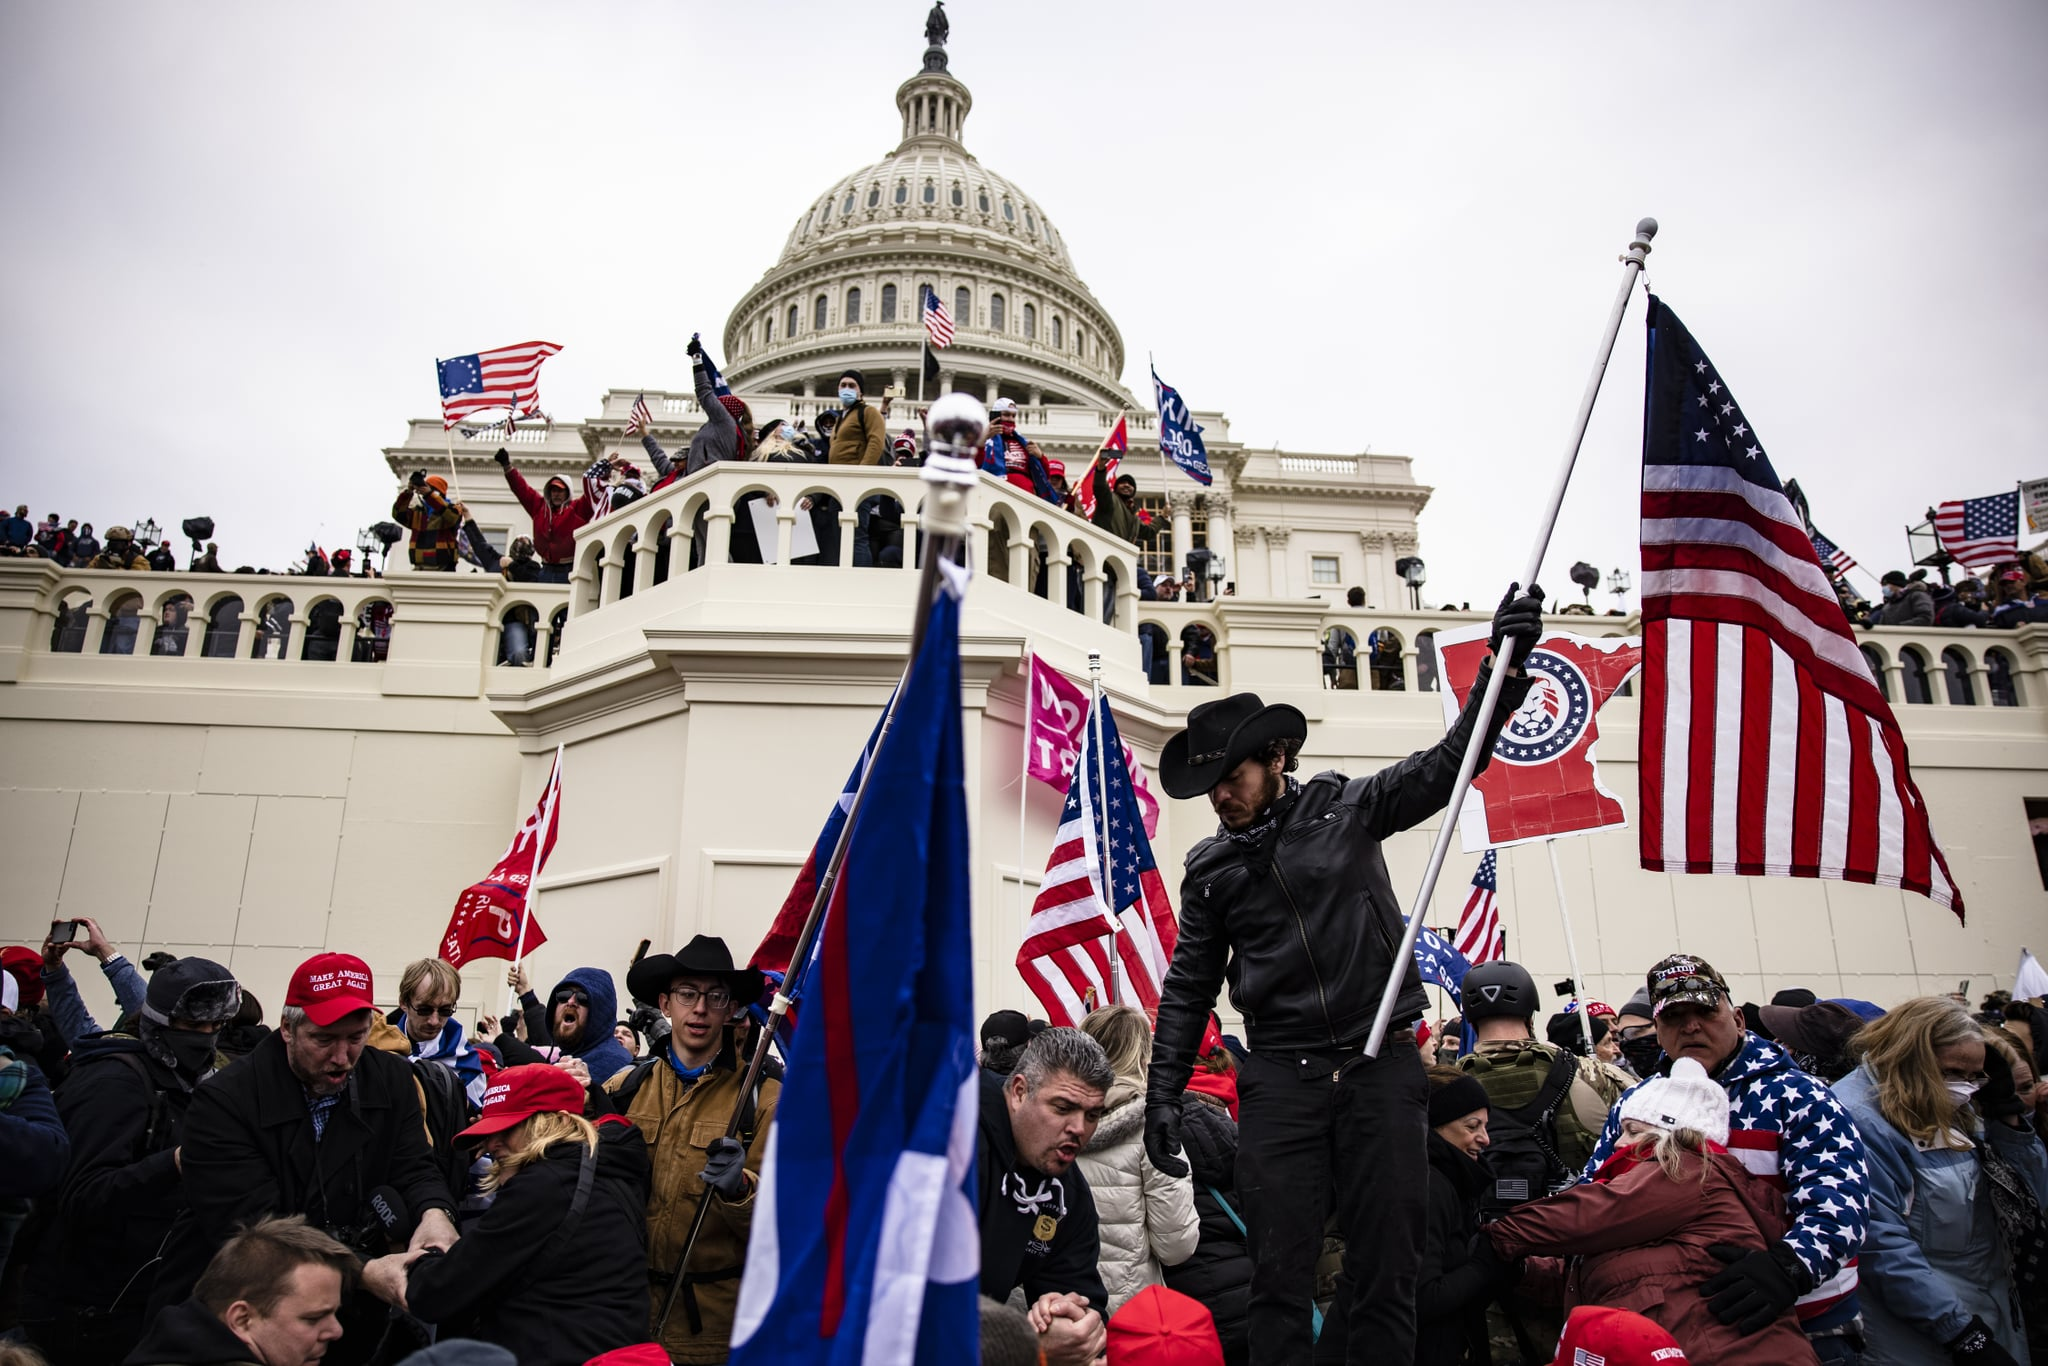 WASHINGTON, DC - JANUARY 06: Pro-Trump supporters storm the U.S. Capitol following a rally with President Donald Trump on January 6, 2021 in Washington, DC. Trump supporters gathered in the nation's capital today to protest the ratification of President-elect Joe Biden's Electoral College victory over President Trump in the 2020 election. (Photo by Samuel Corum/Getty Images)